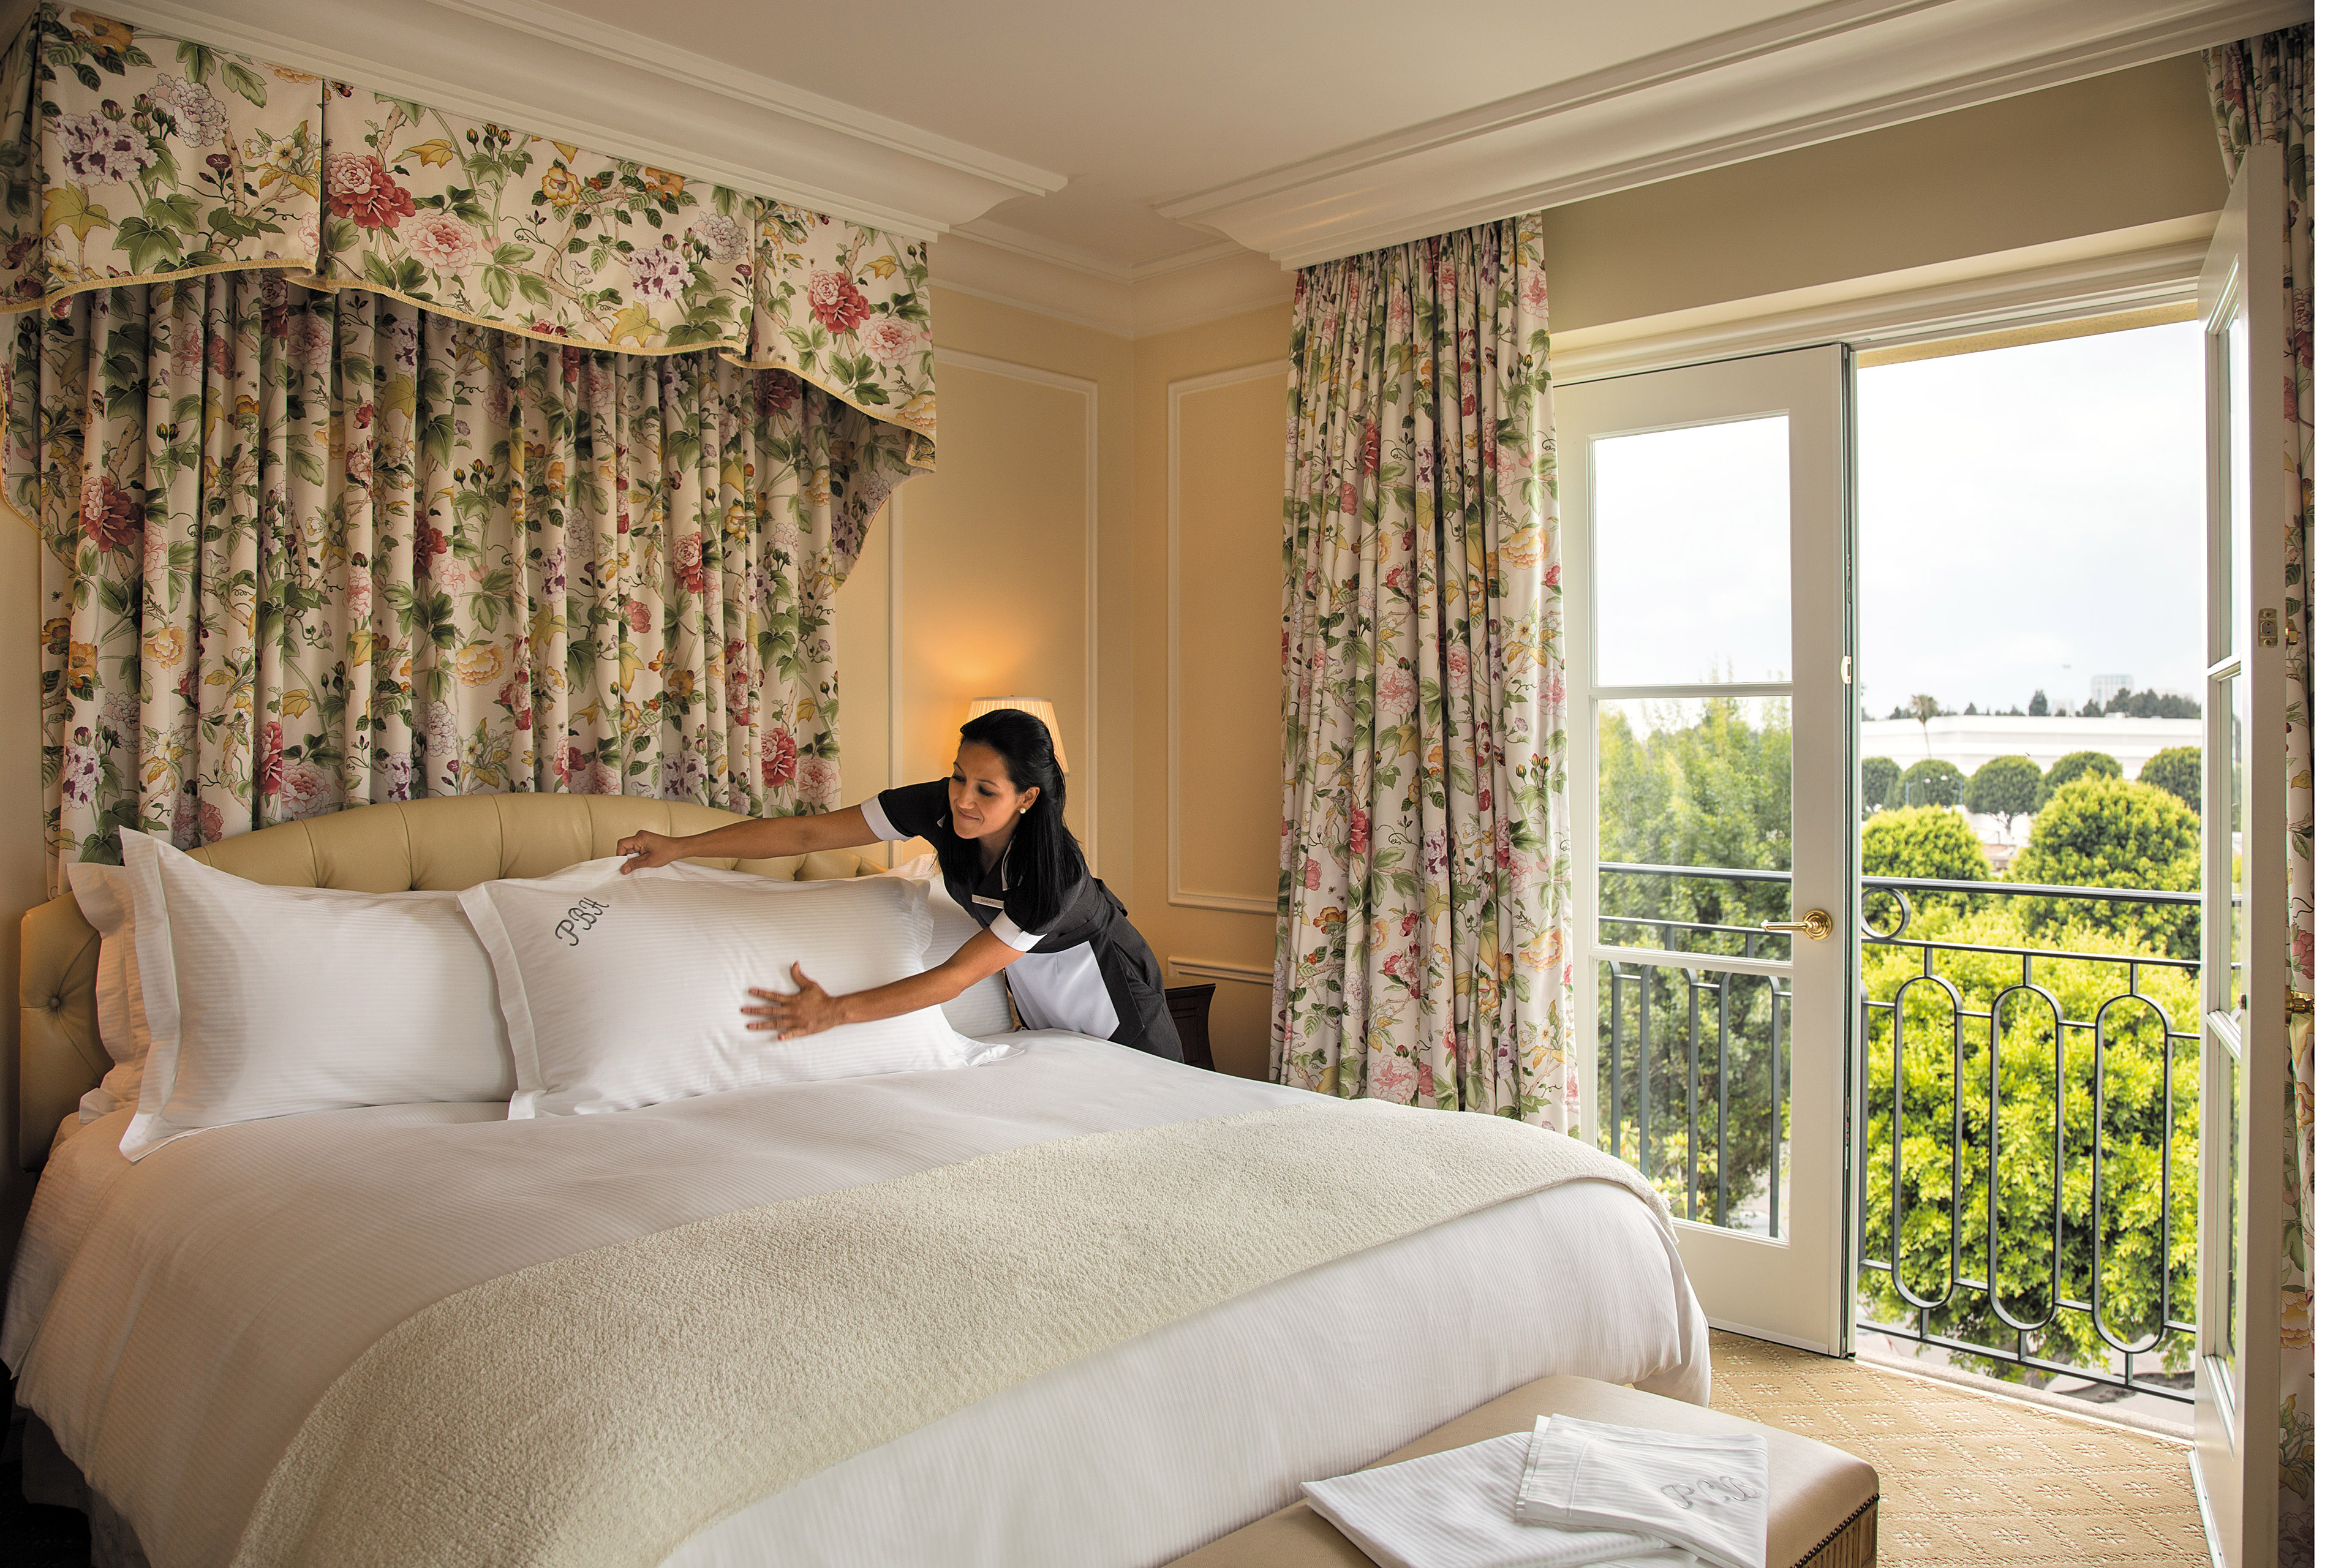 Hotel Pillows 8 Secrets About Where You Rest Your Head Cnn Travel